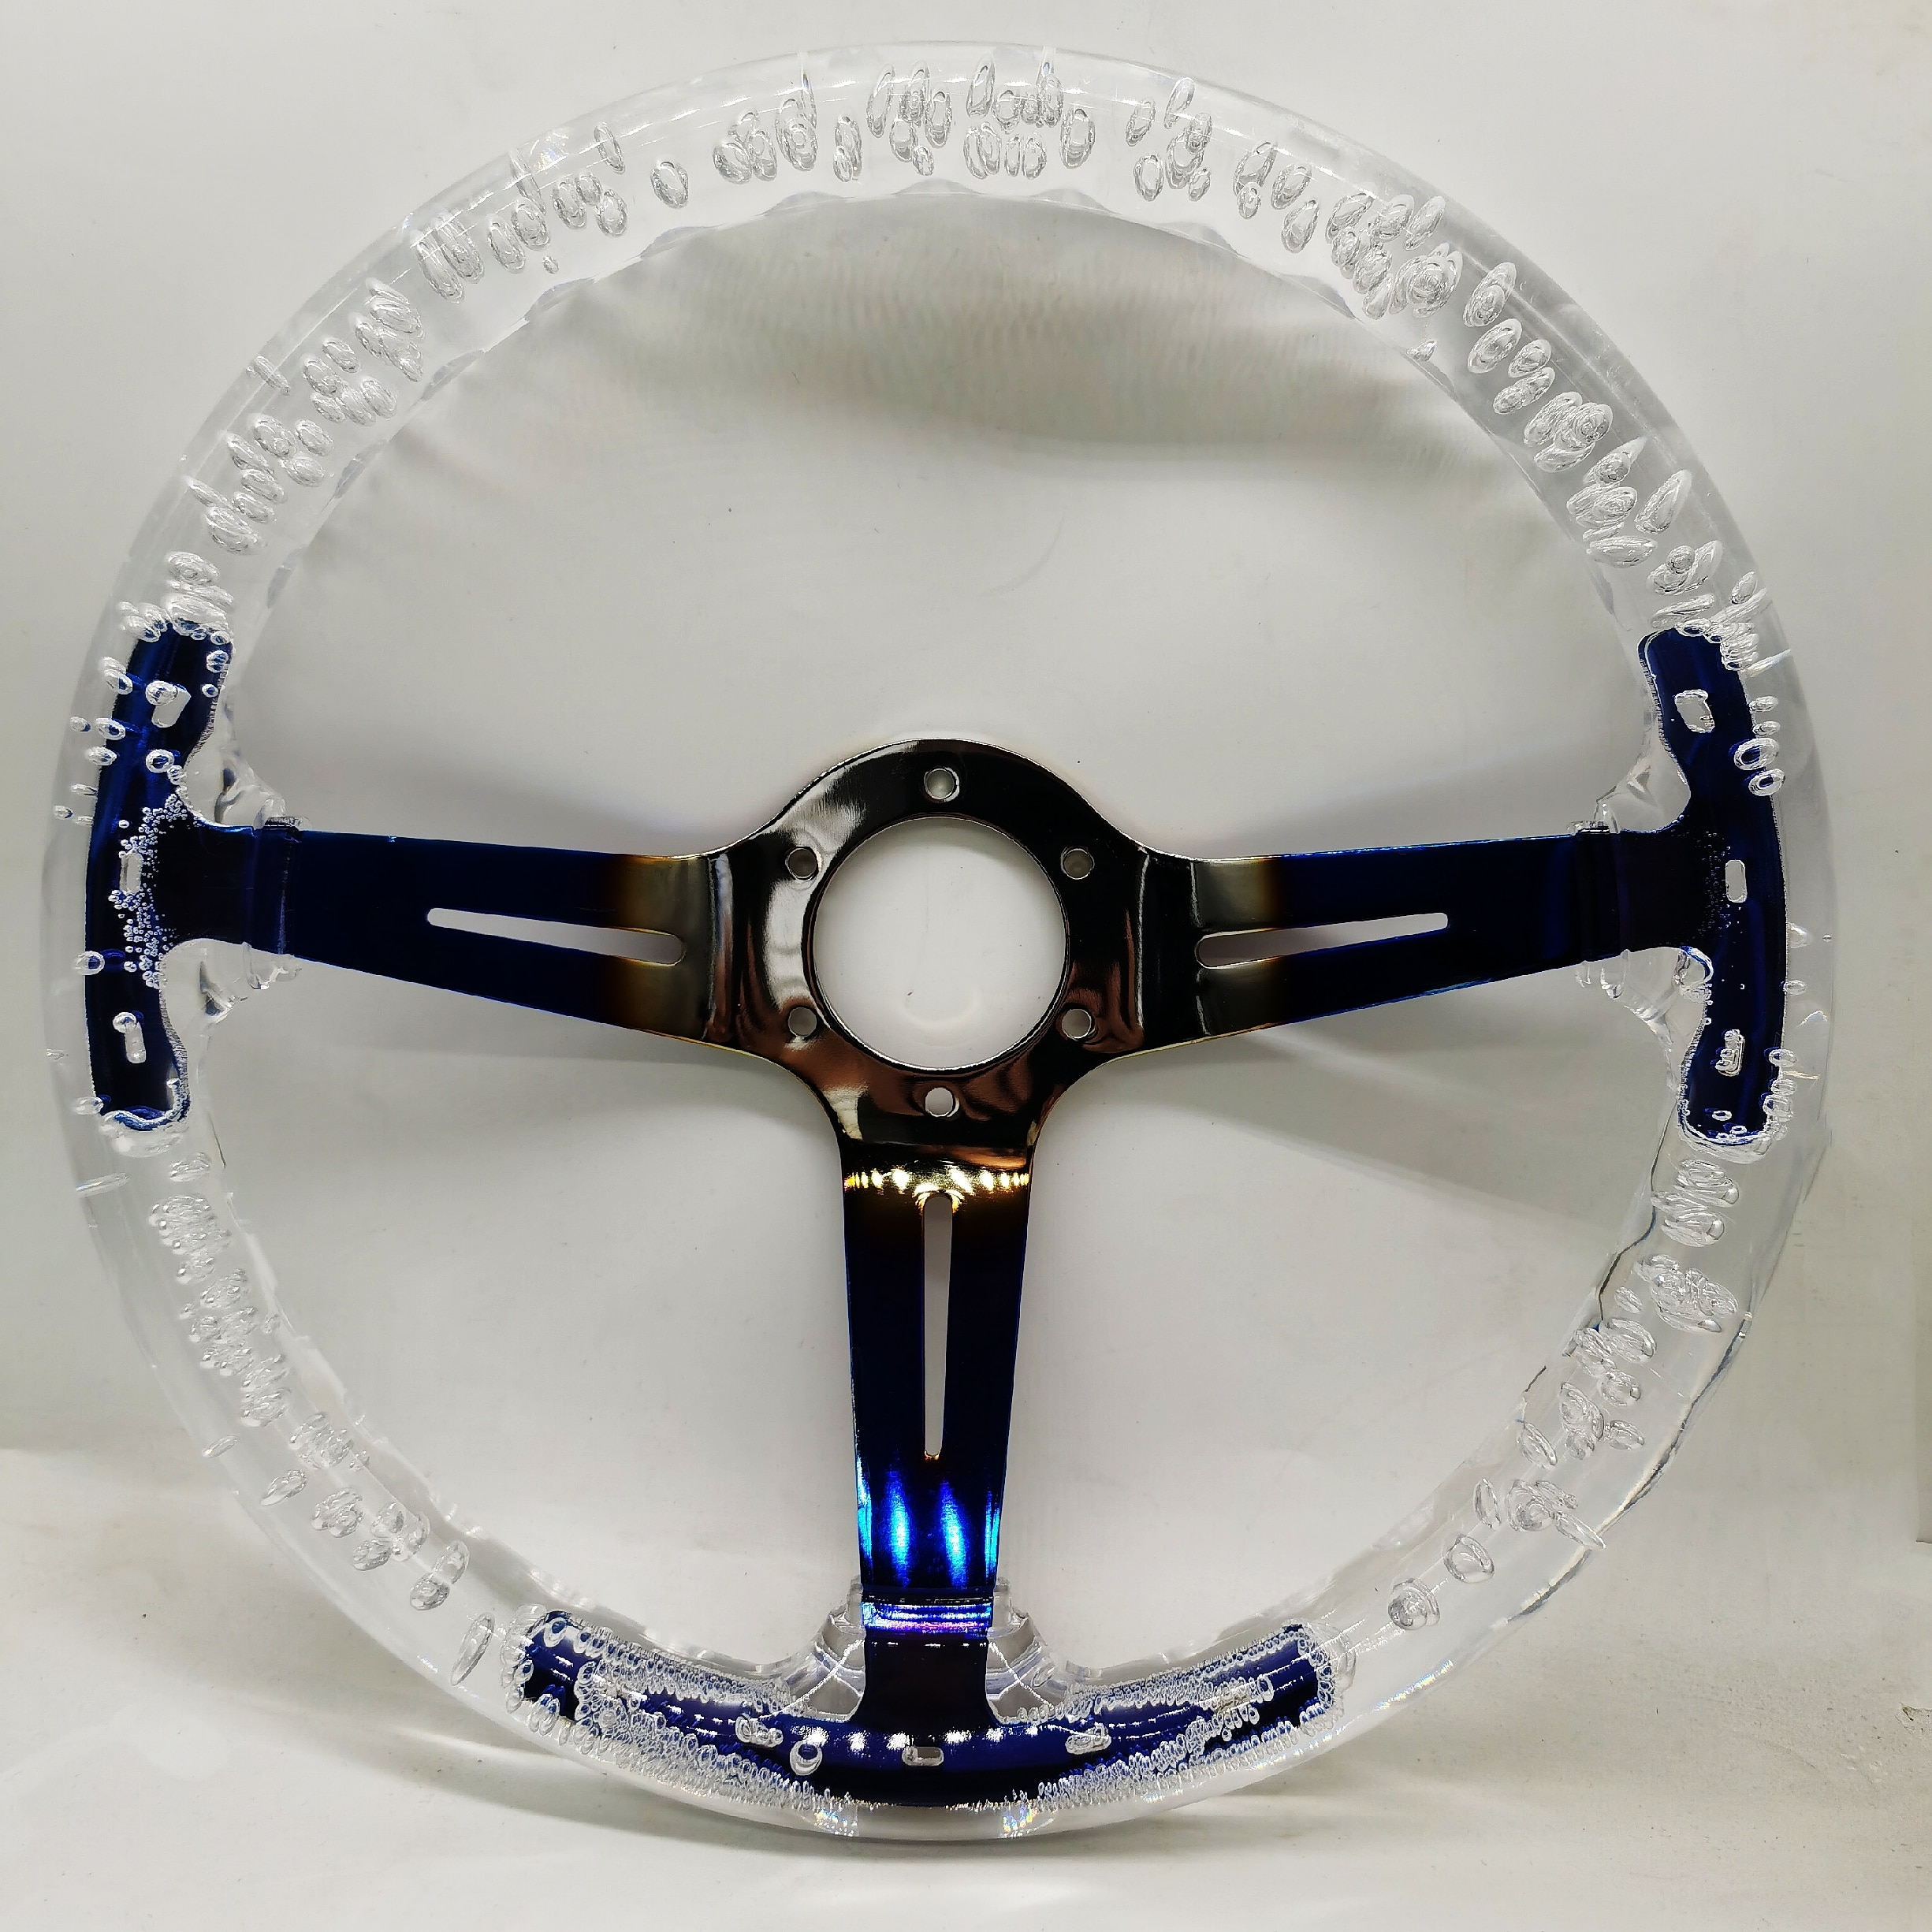 New 350mm 14inch Acrylic Transparent Racing Sports Steering Wheel Neo Chrome ABS 70mm Deep Universal Car Auto with Logo